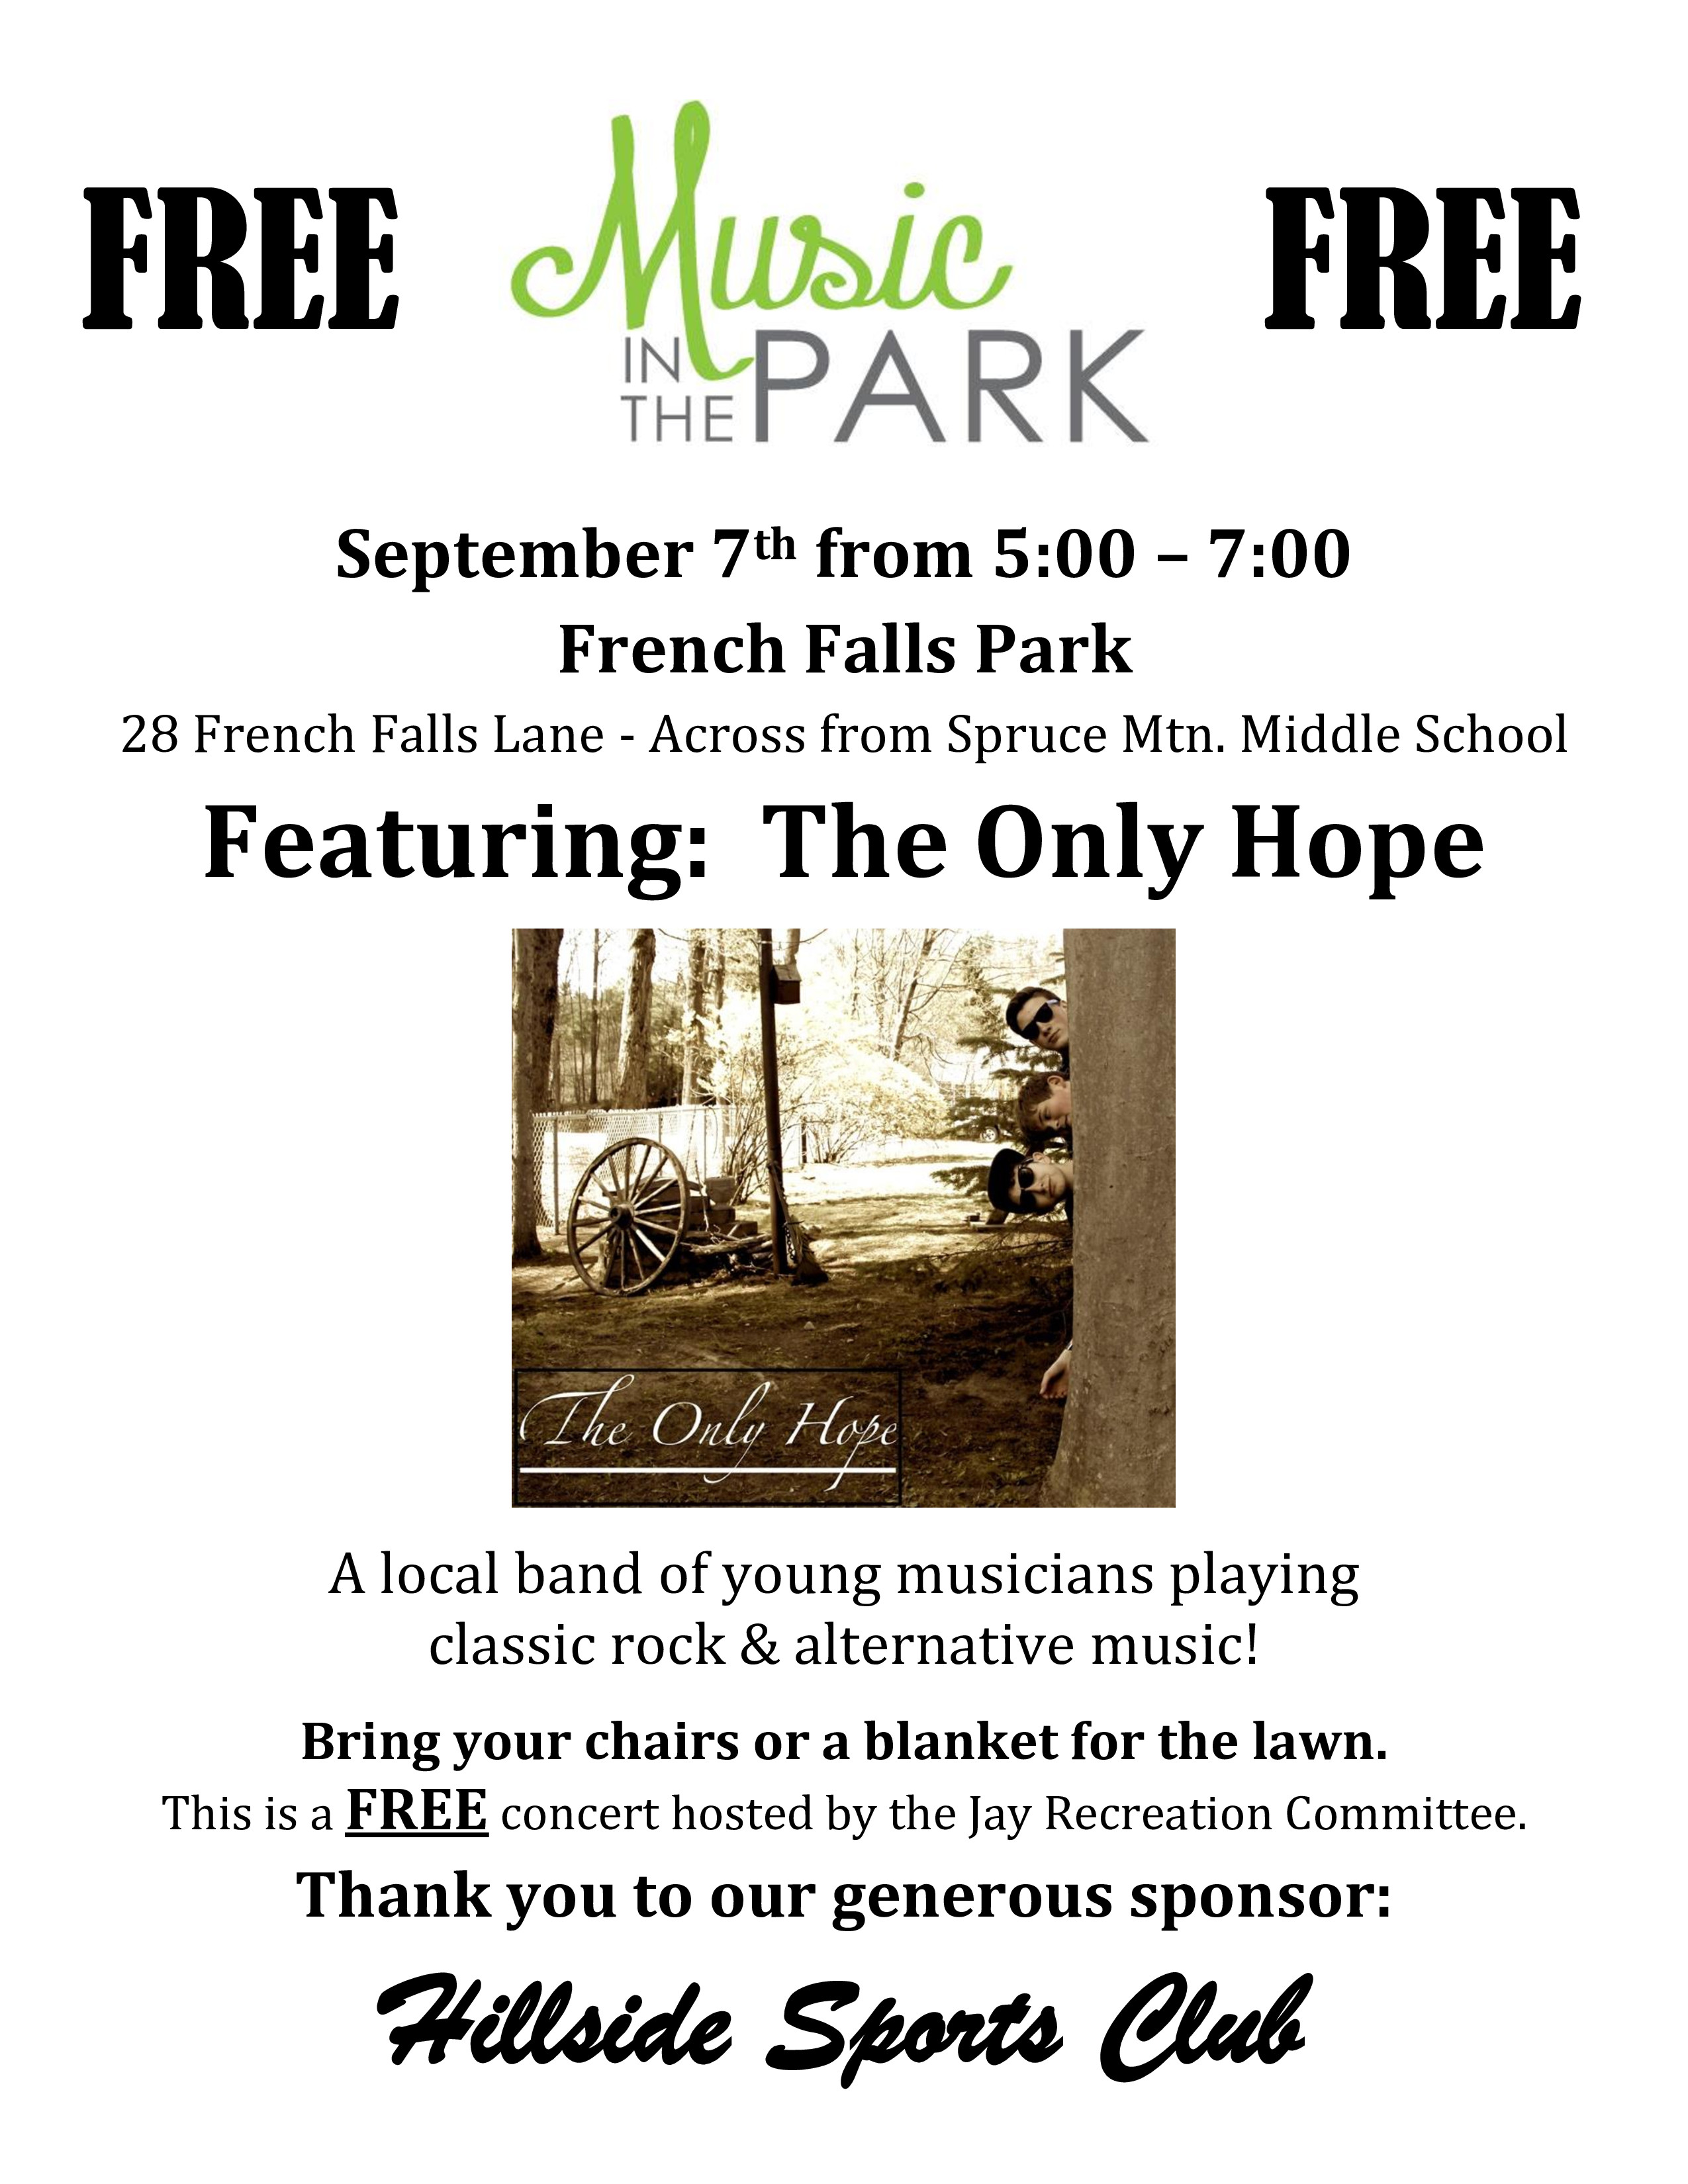 Music in the Park brings 'The Only Hope' to French Falls on